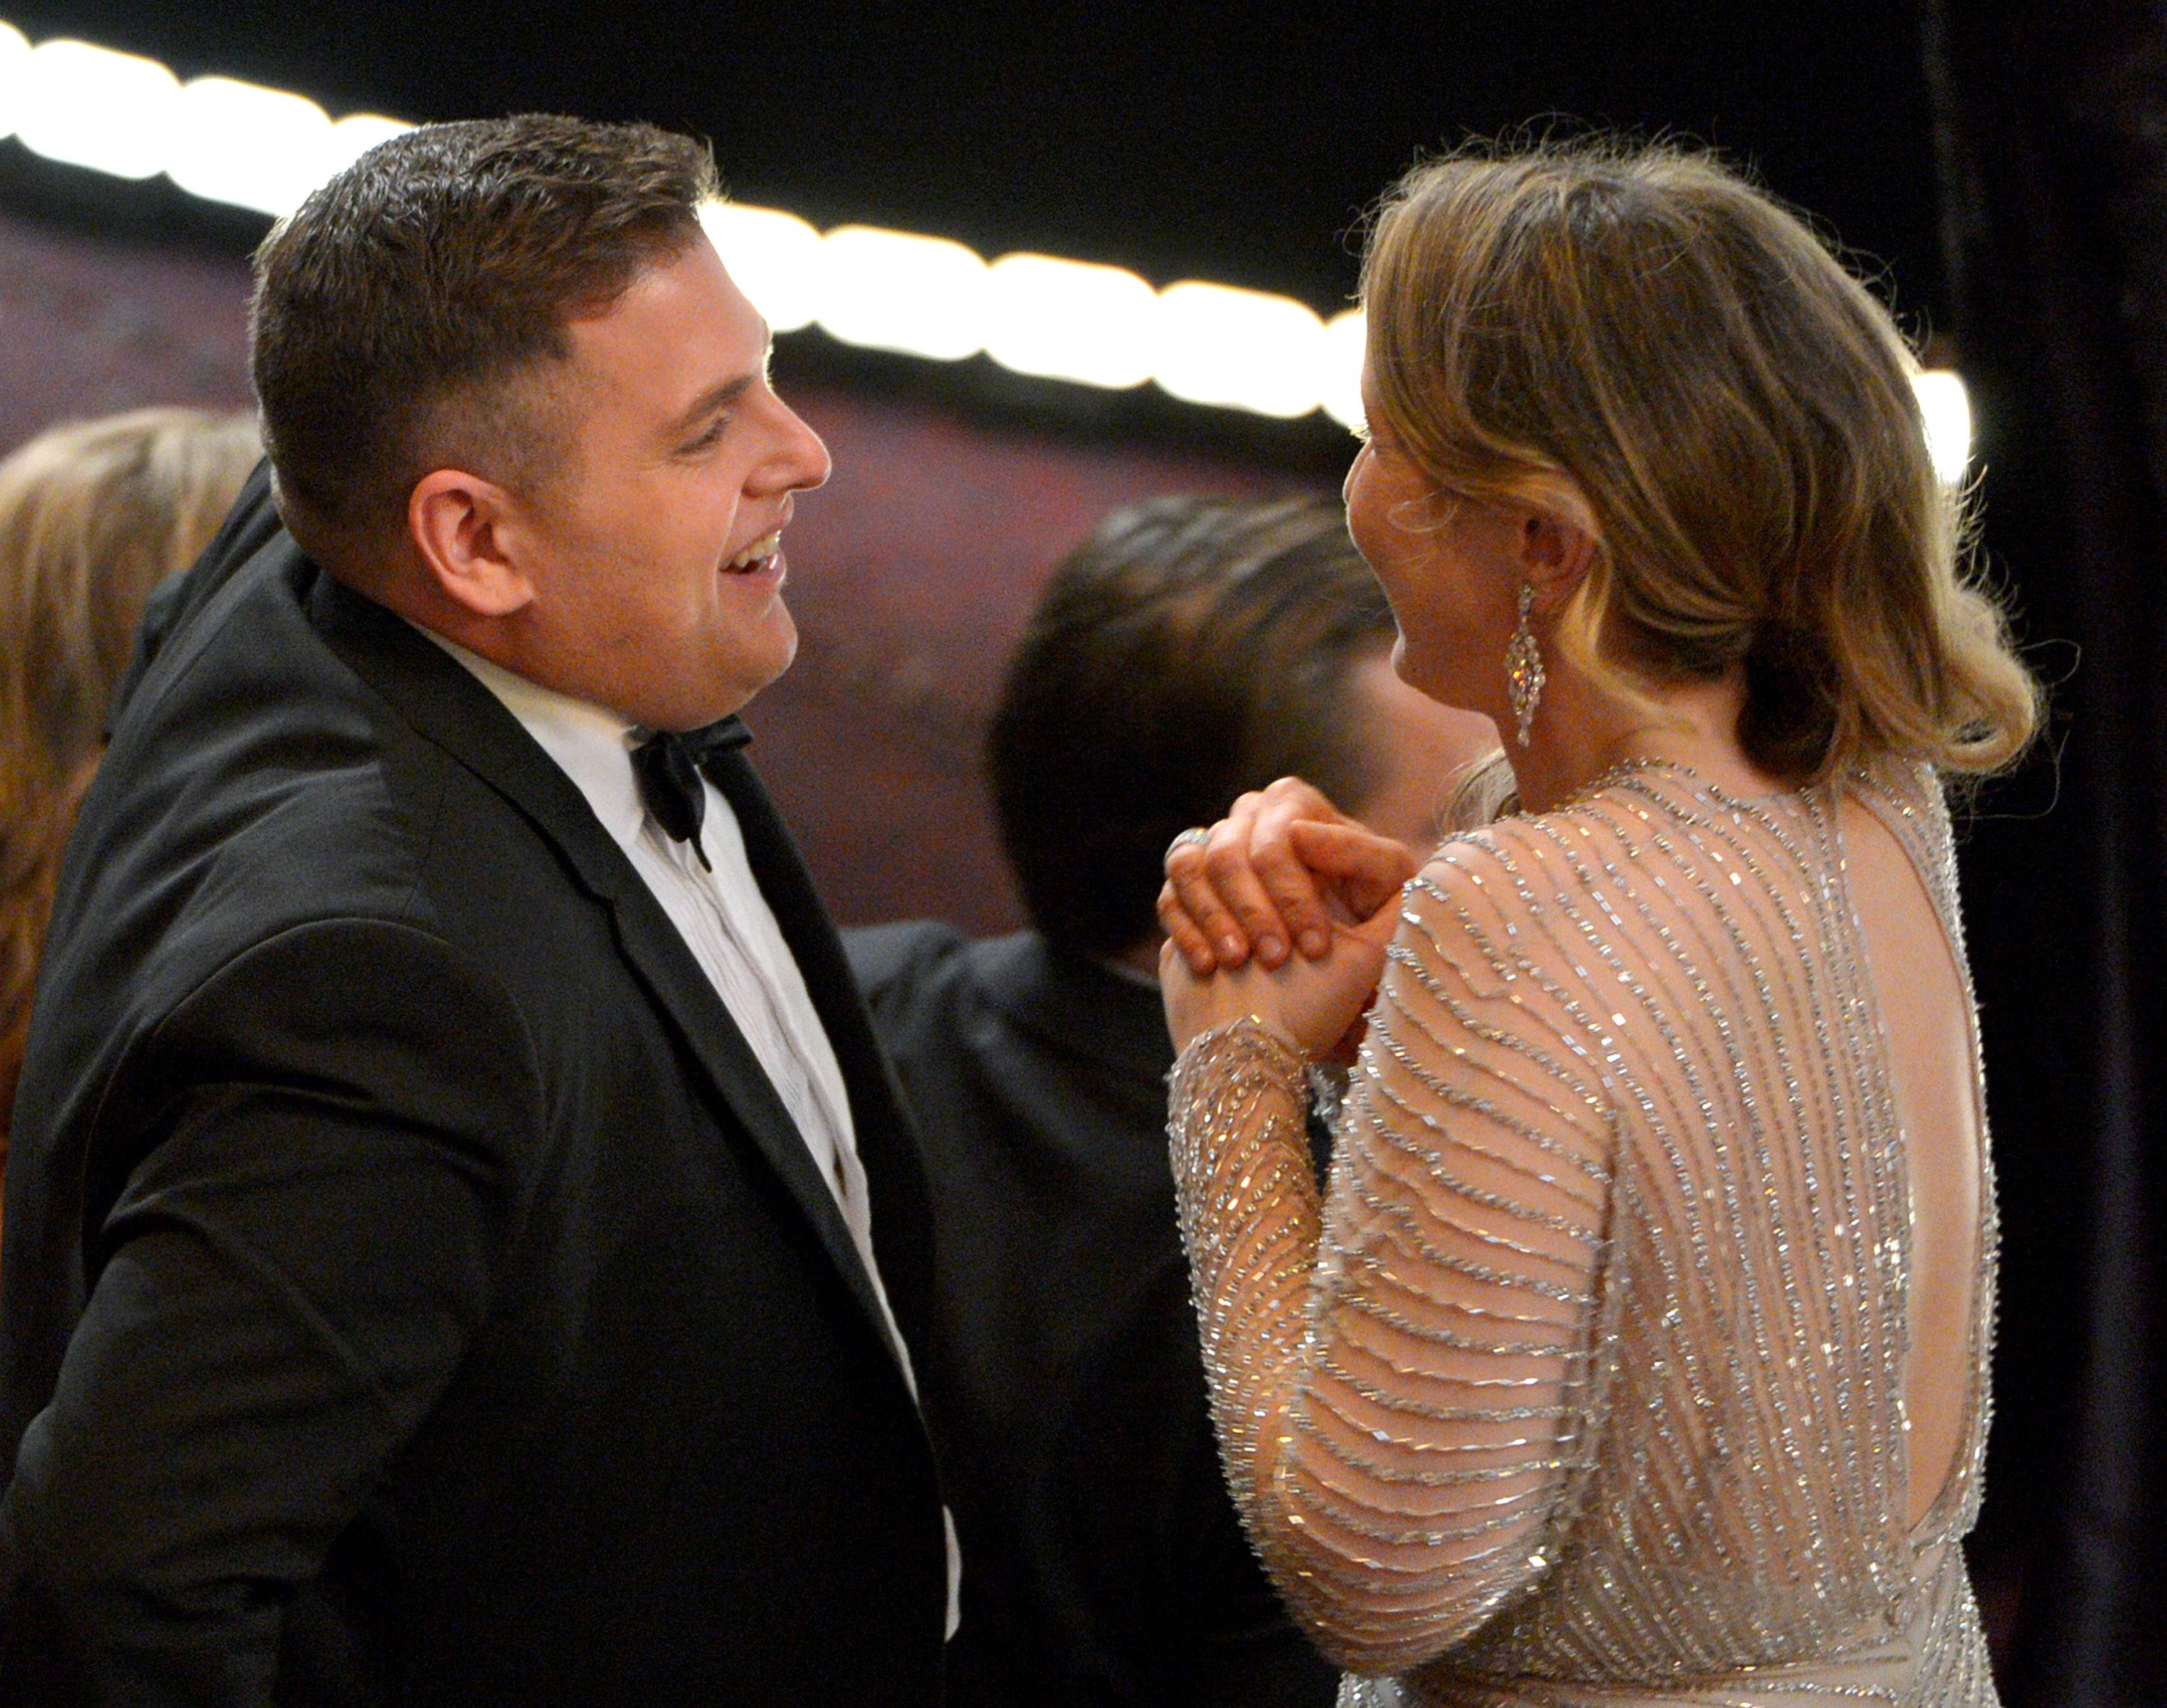 Jonah Hill, left, and Julie Delpy speak in the audience at the Oscars at the Dolby Theatre on Sunday in Los Angeles.